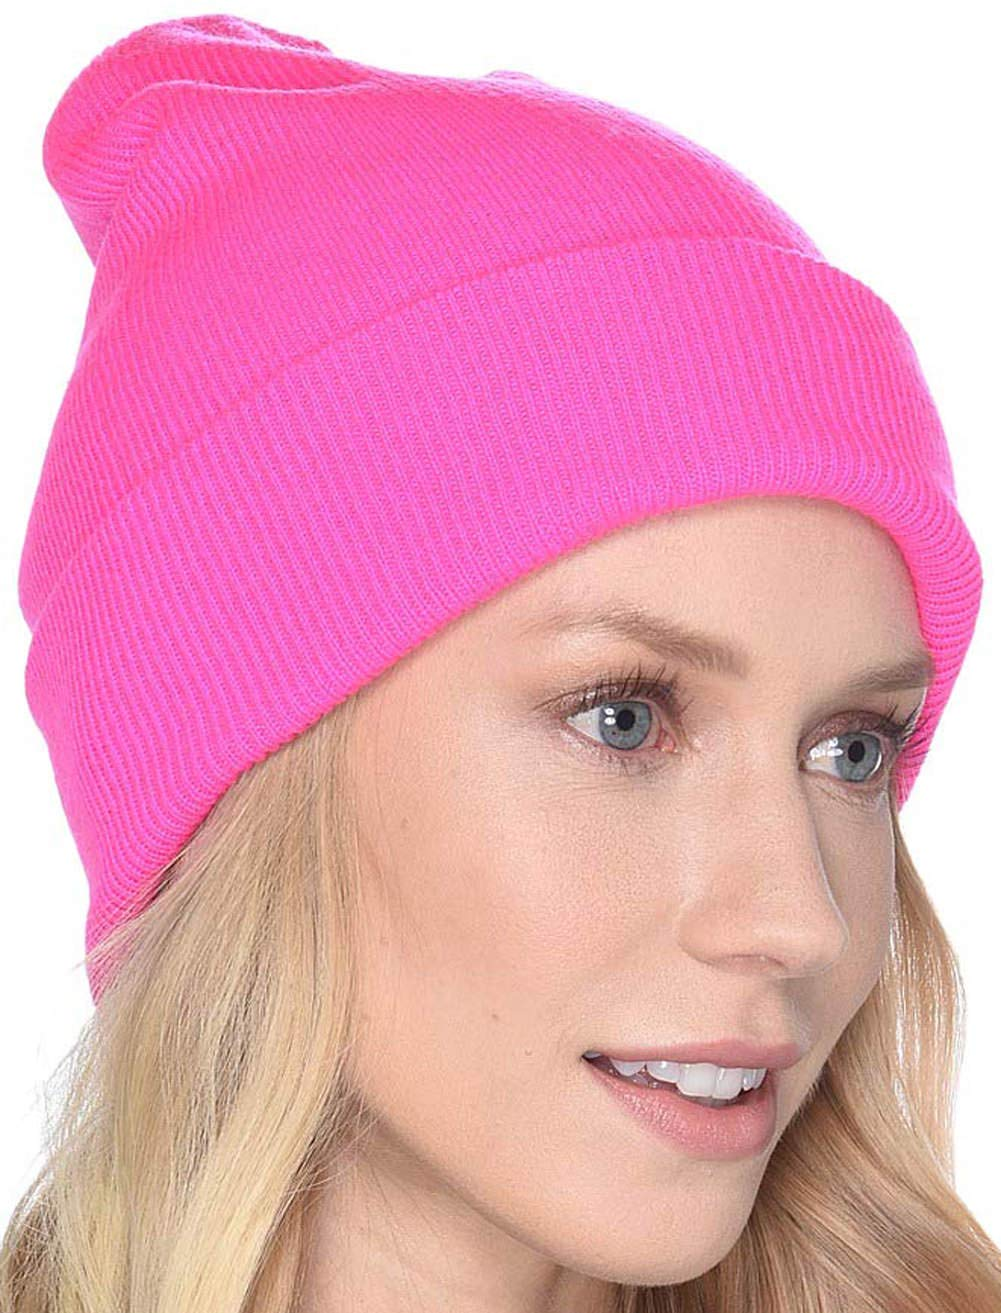 UGG Women's Luxe Knit Cuff Beanie Bright Pink One Size